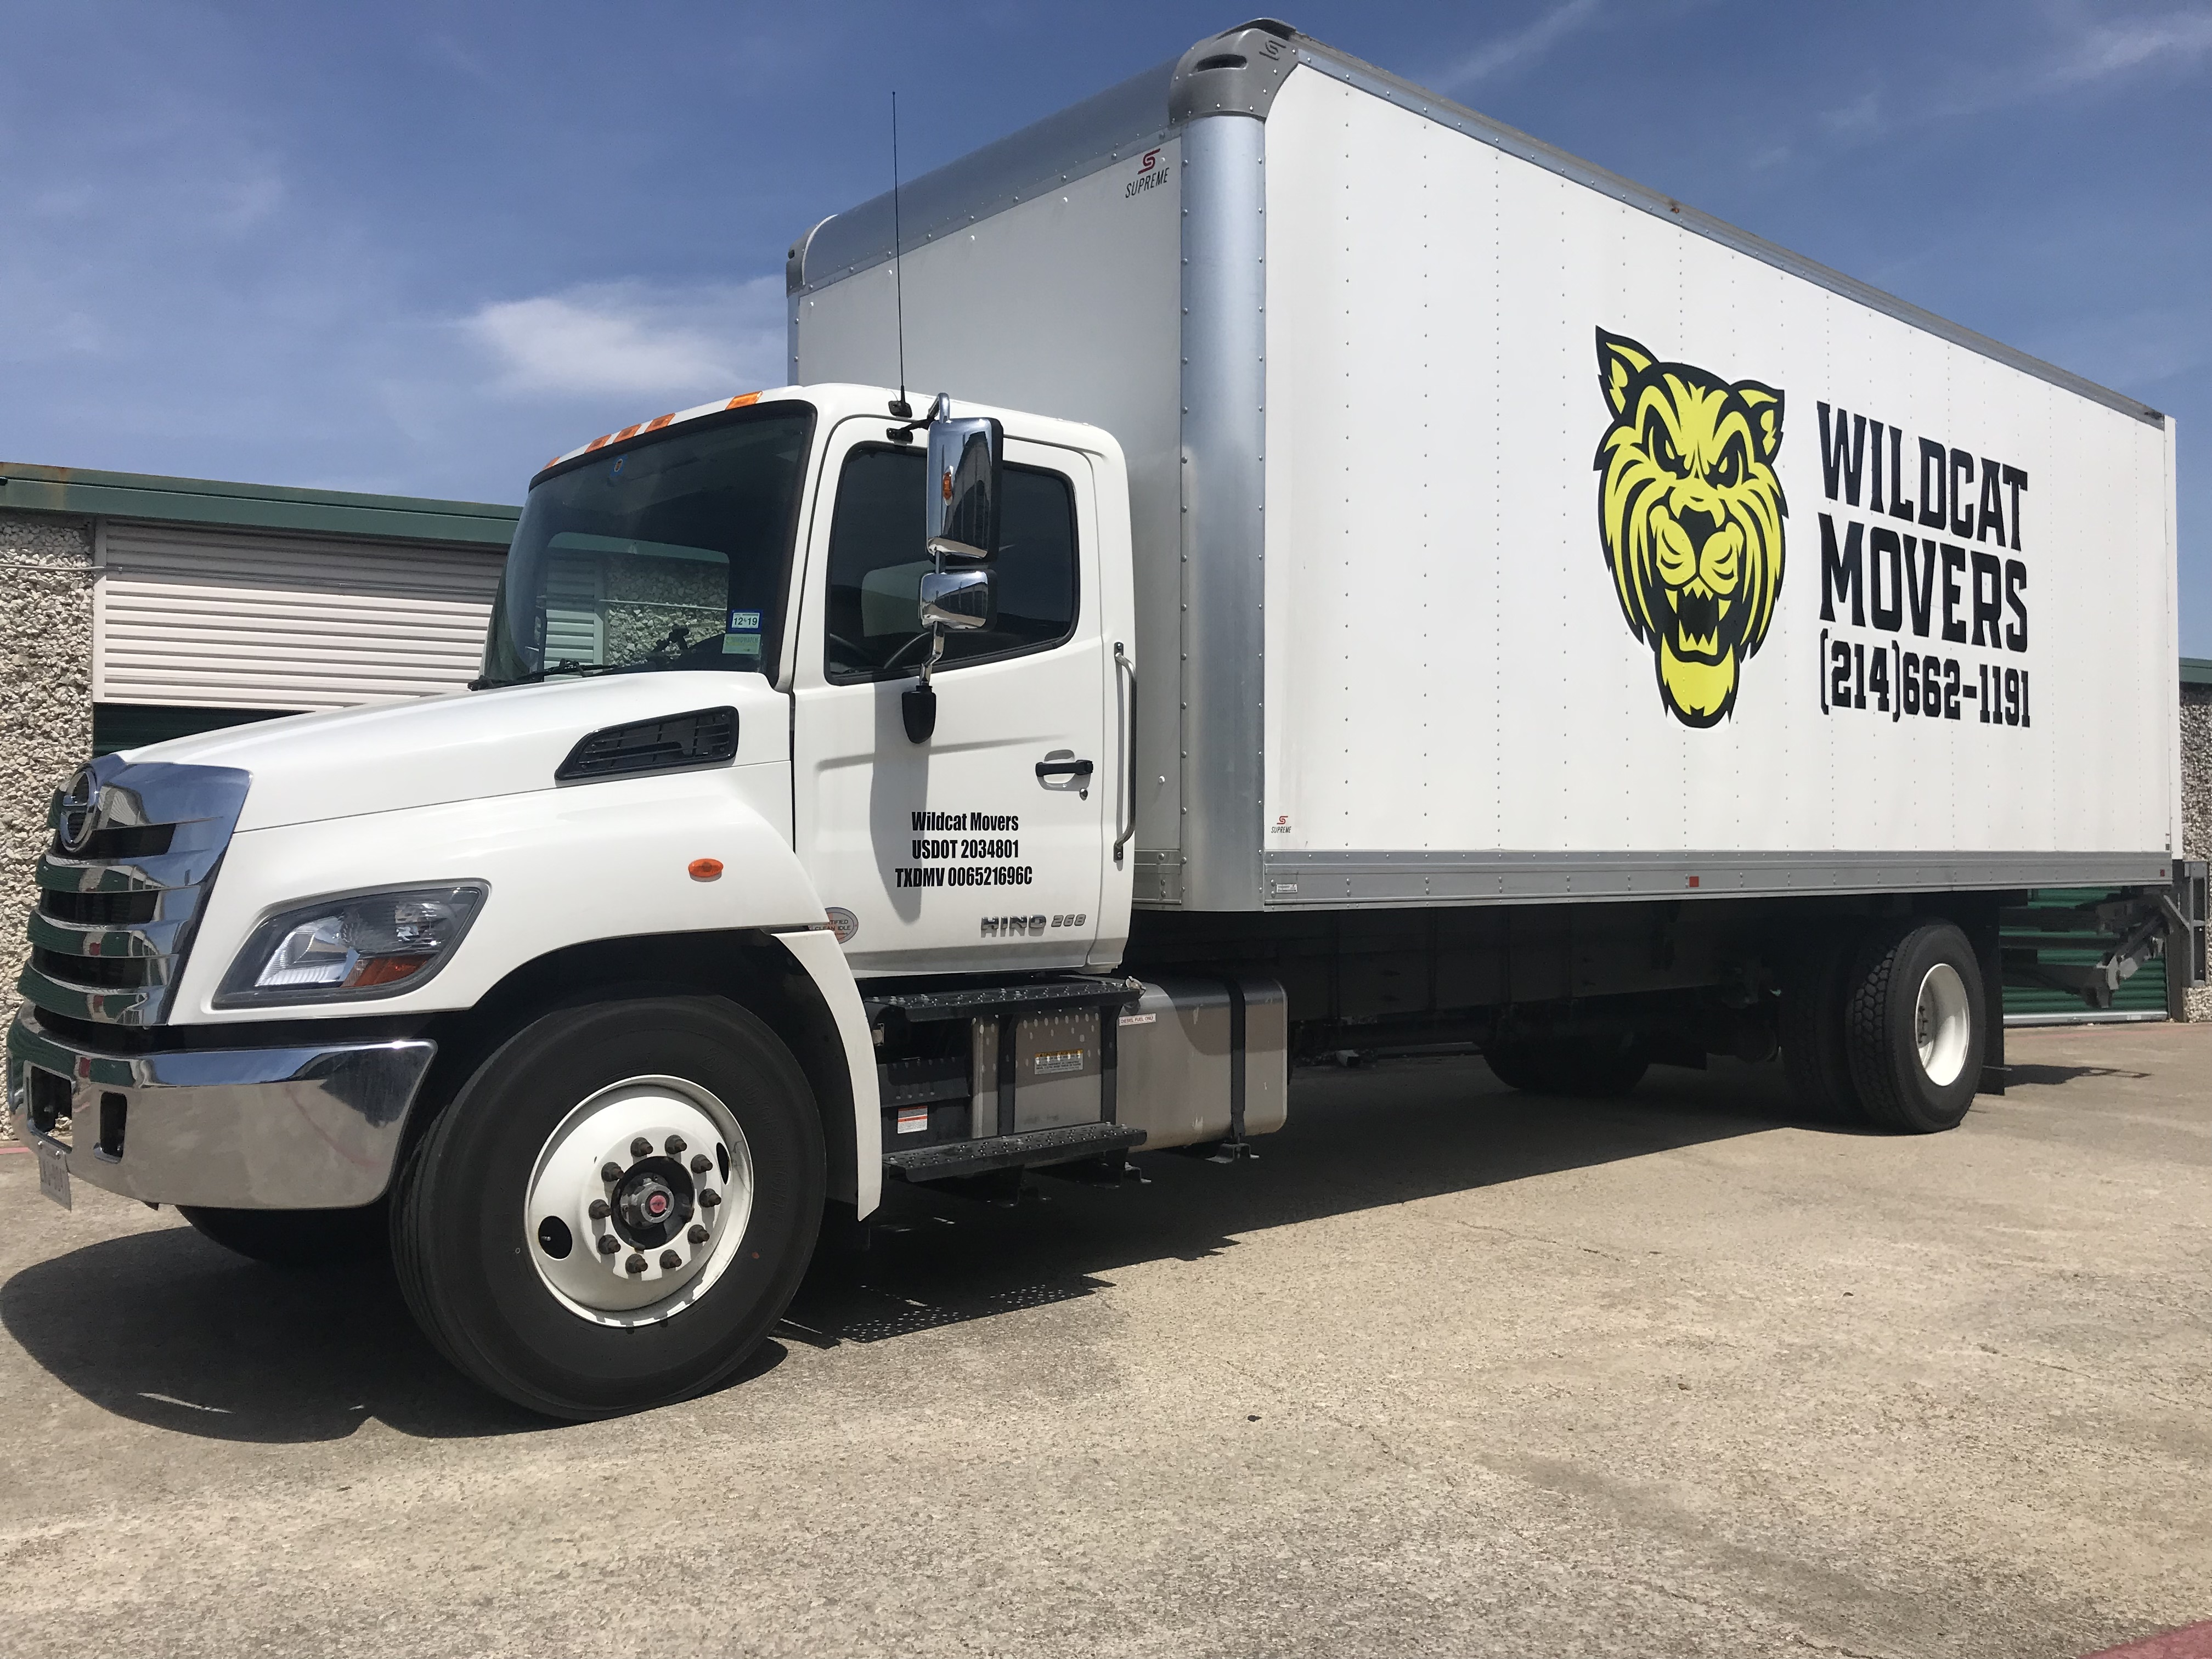 Moving Truck Companies >> Wildcat Movers The Best Dallas Moving Company Get Your